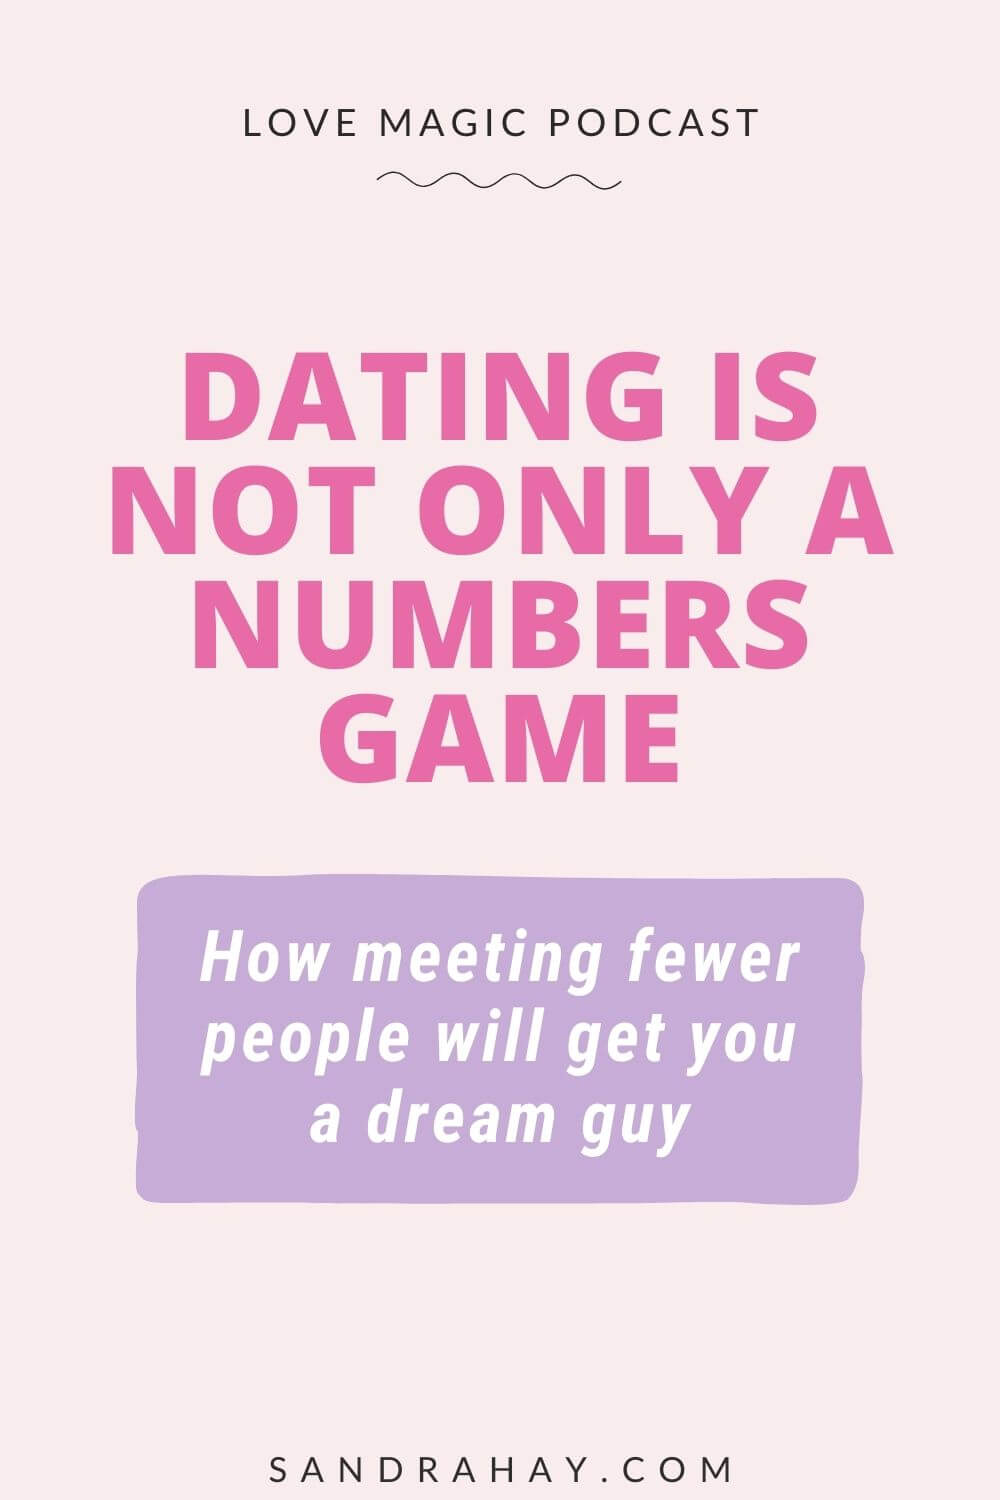 How meeting fewer people will get you a dream guy